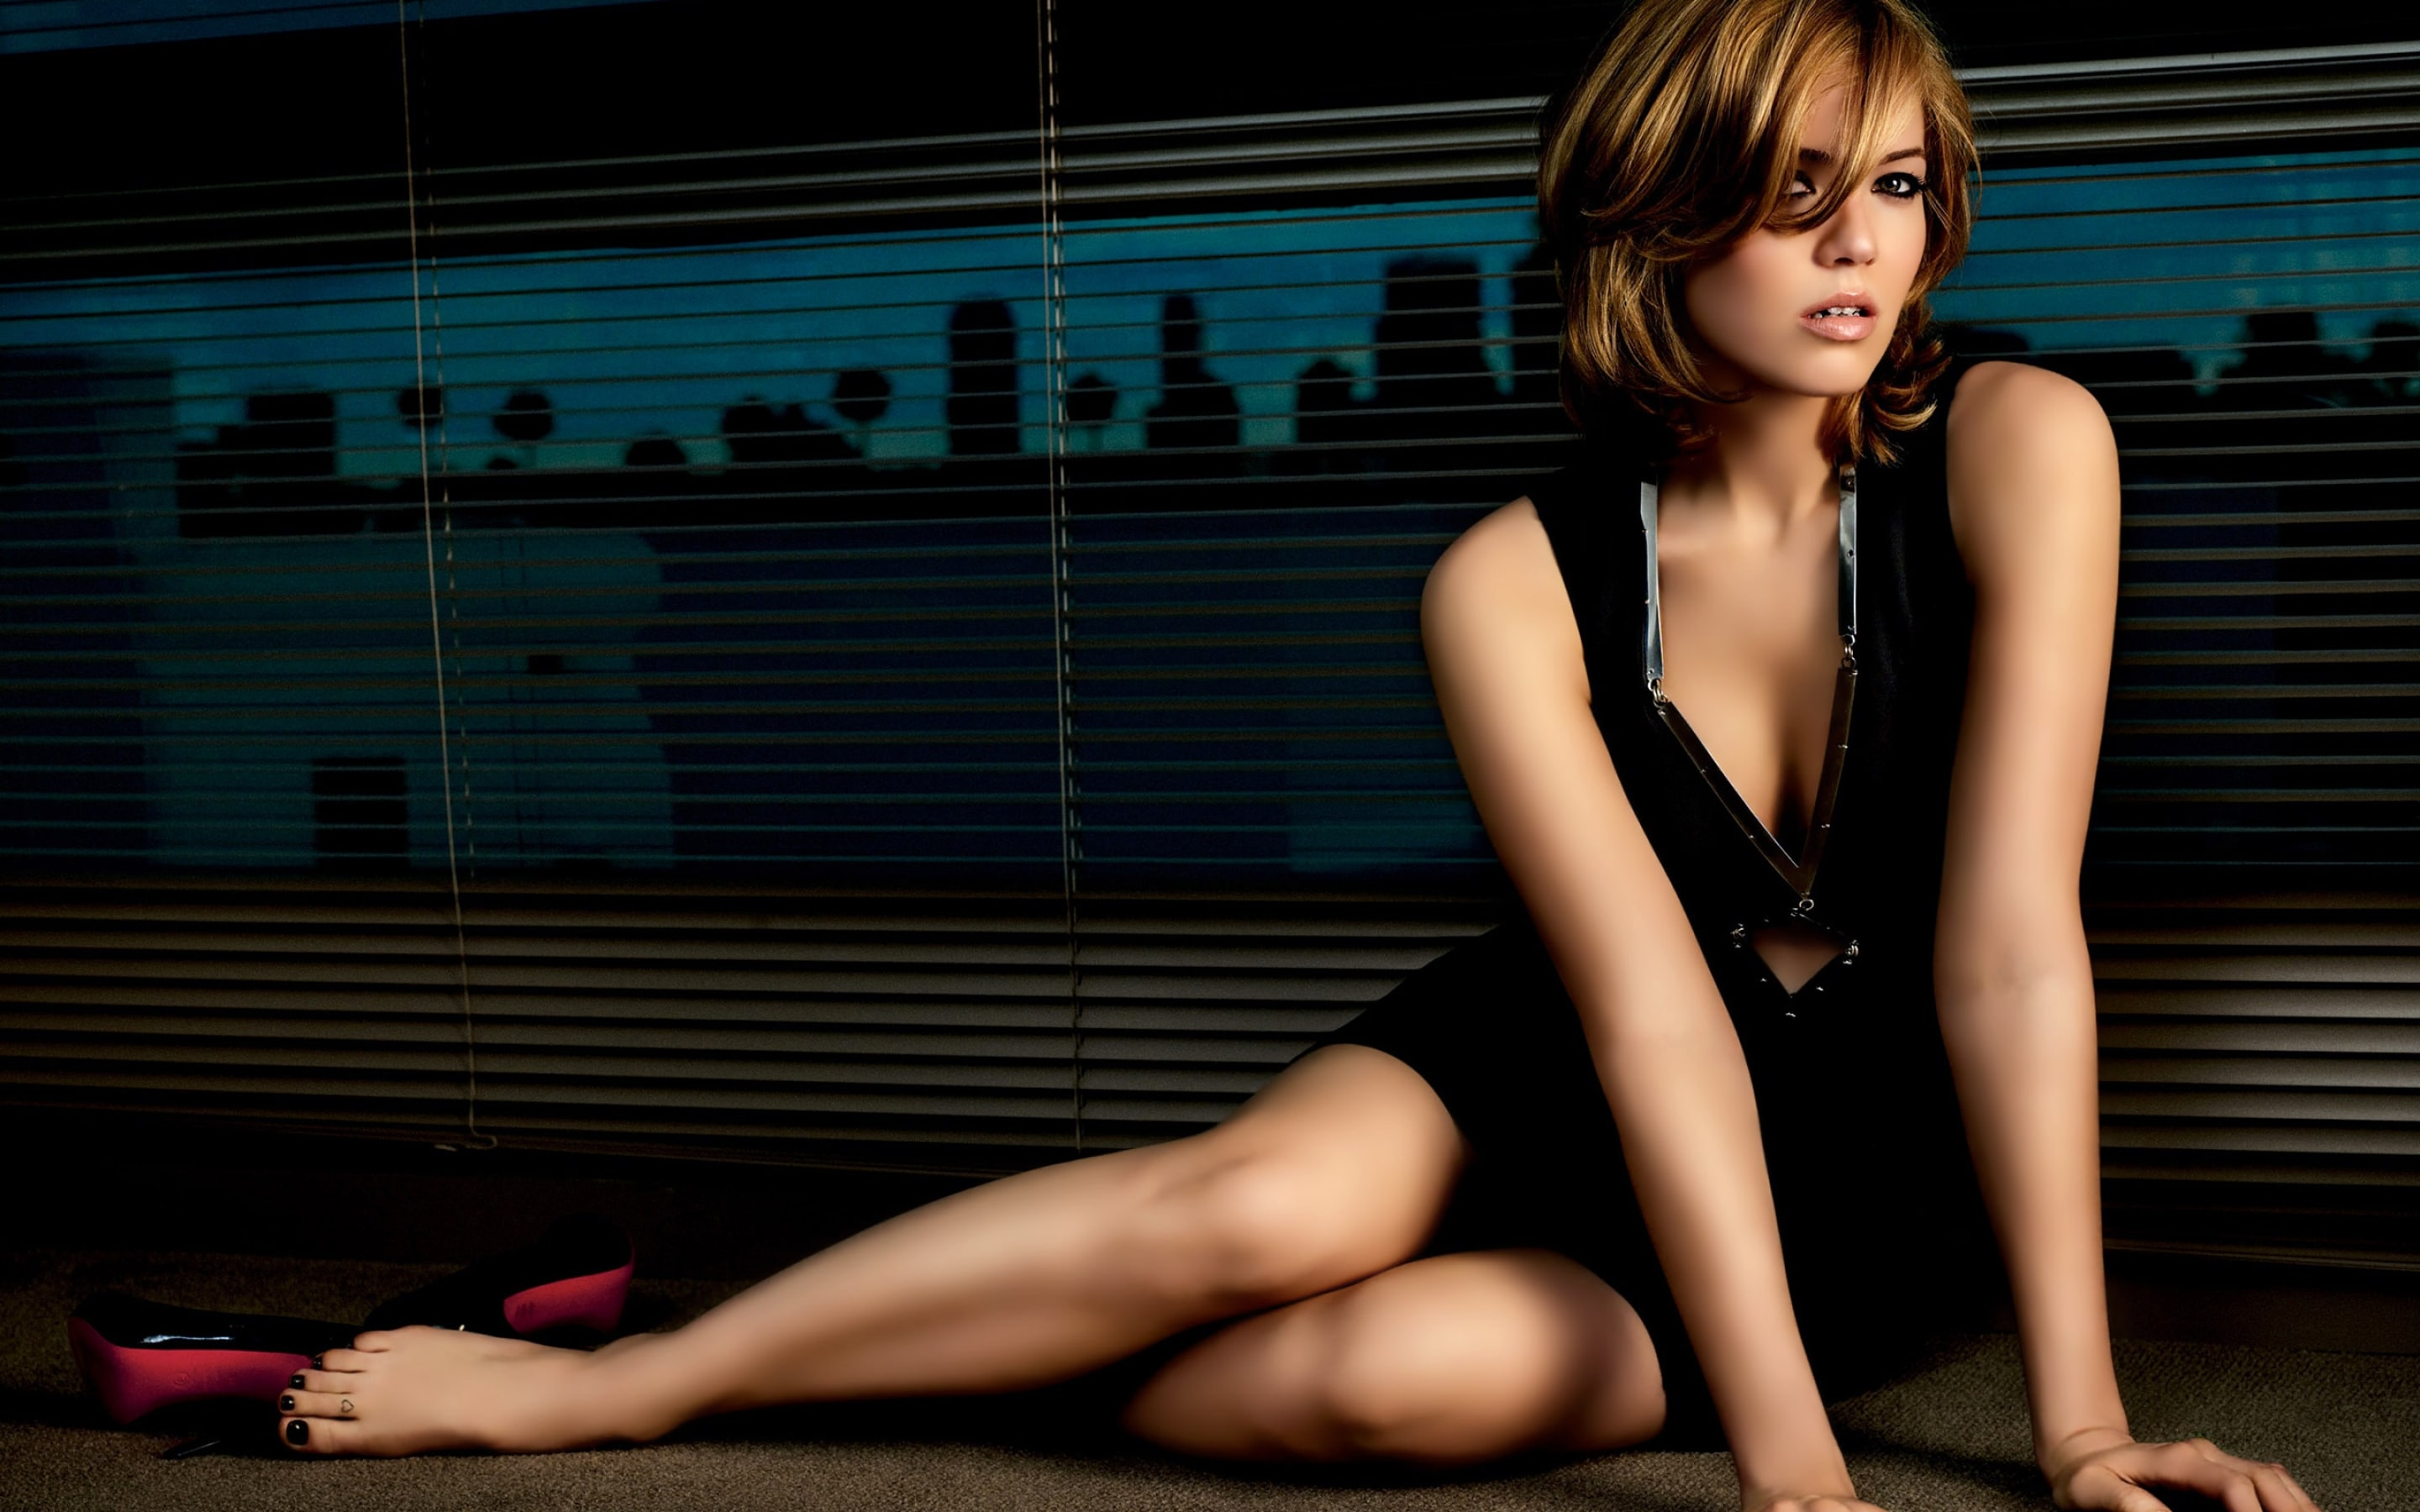 Mandy Moore Desktop wallpaper